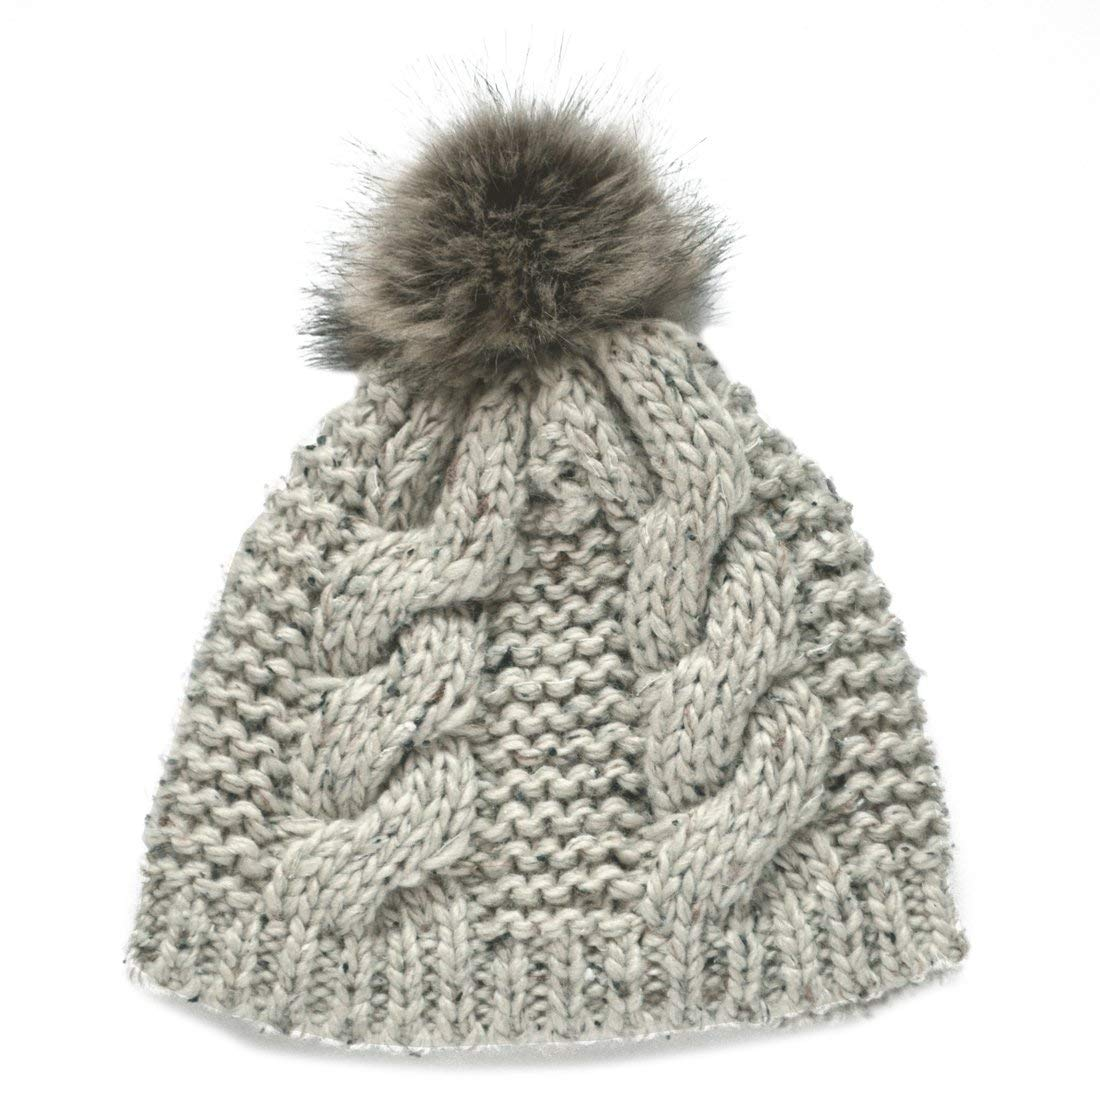 a2daacece77 Get Quotations · Patrick Francis Ireland Knitted Oatmeal Speckled Wool Fur  Bobble Hat